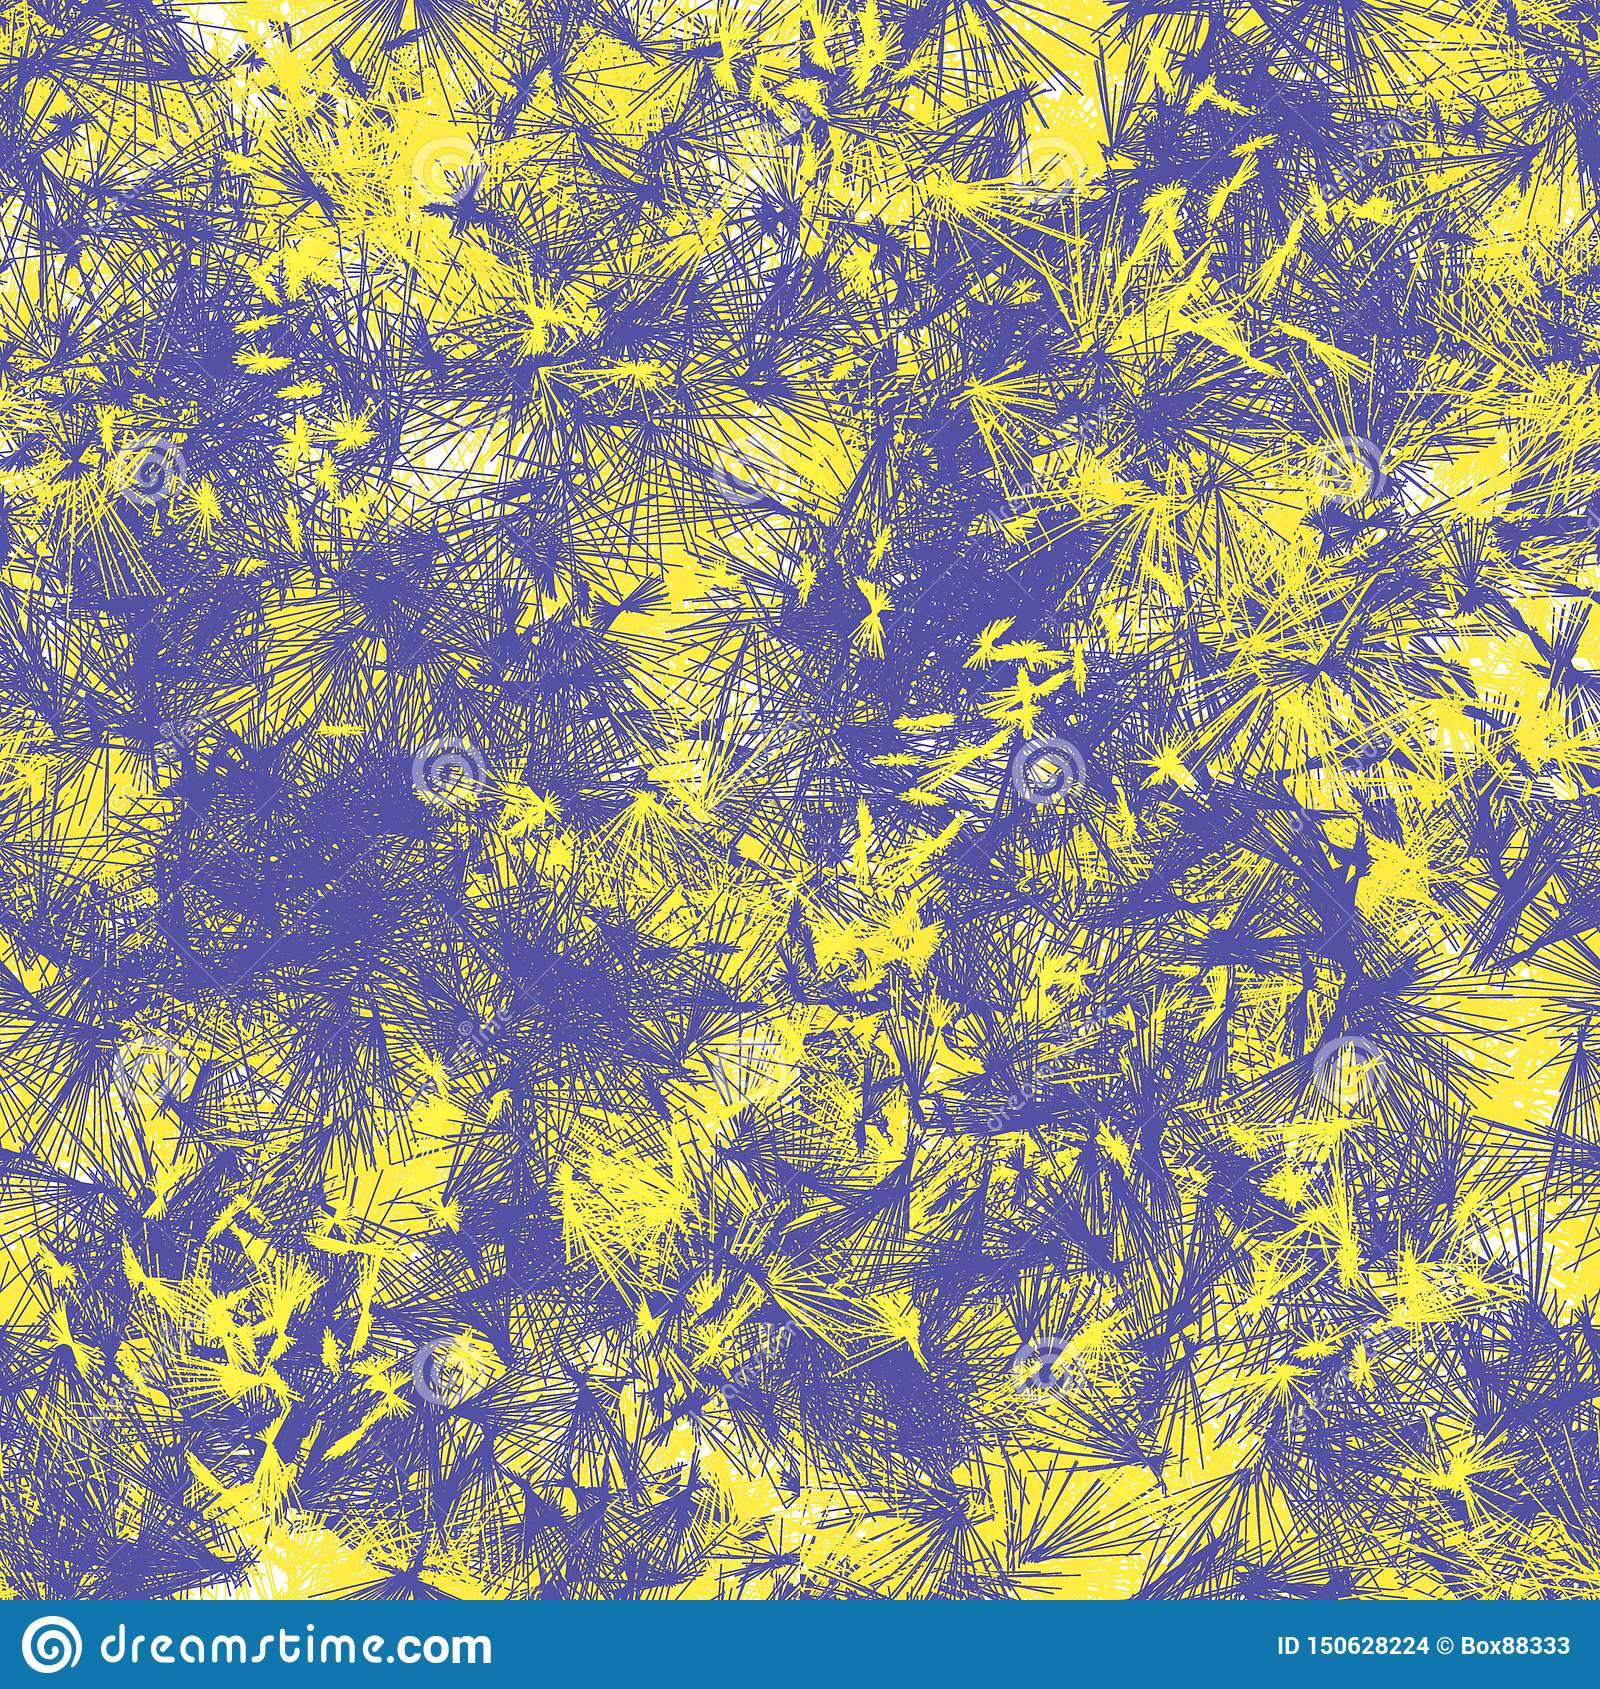 Seamless abstract pattern of colored shapes. Yellow and blue bristle-like lines.